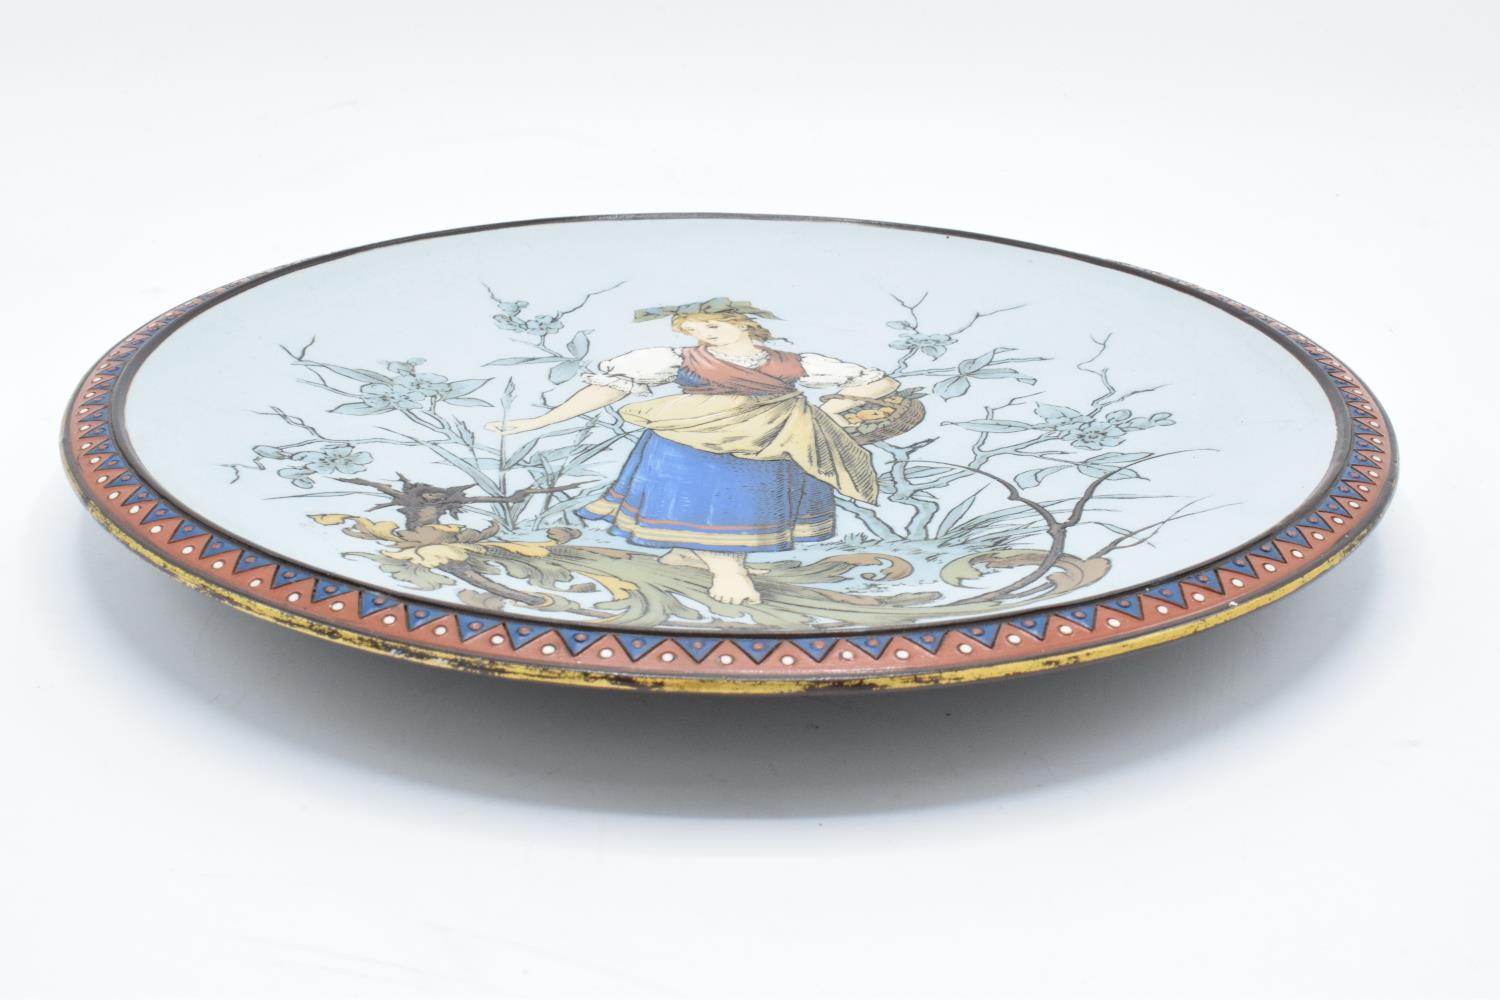 Late 19th century Mettlach (Villeroy and Boch) wall charger after C. Warth decorated with a lady - Image 2 of 4